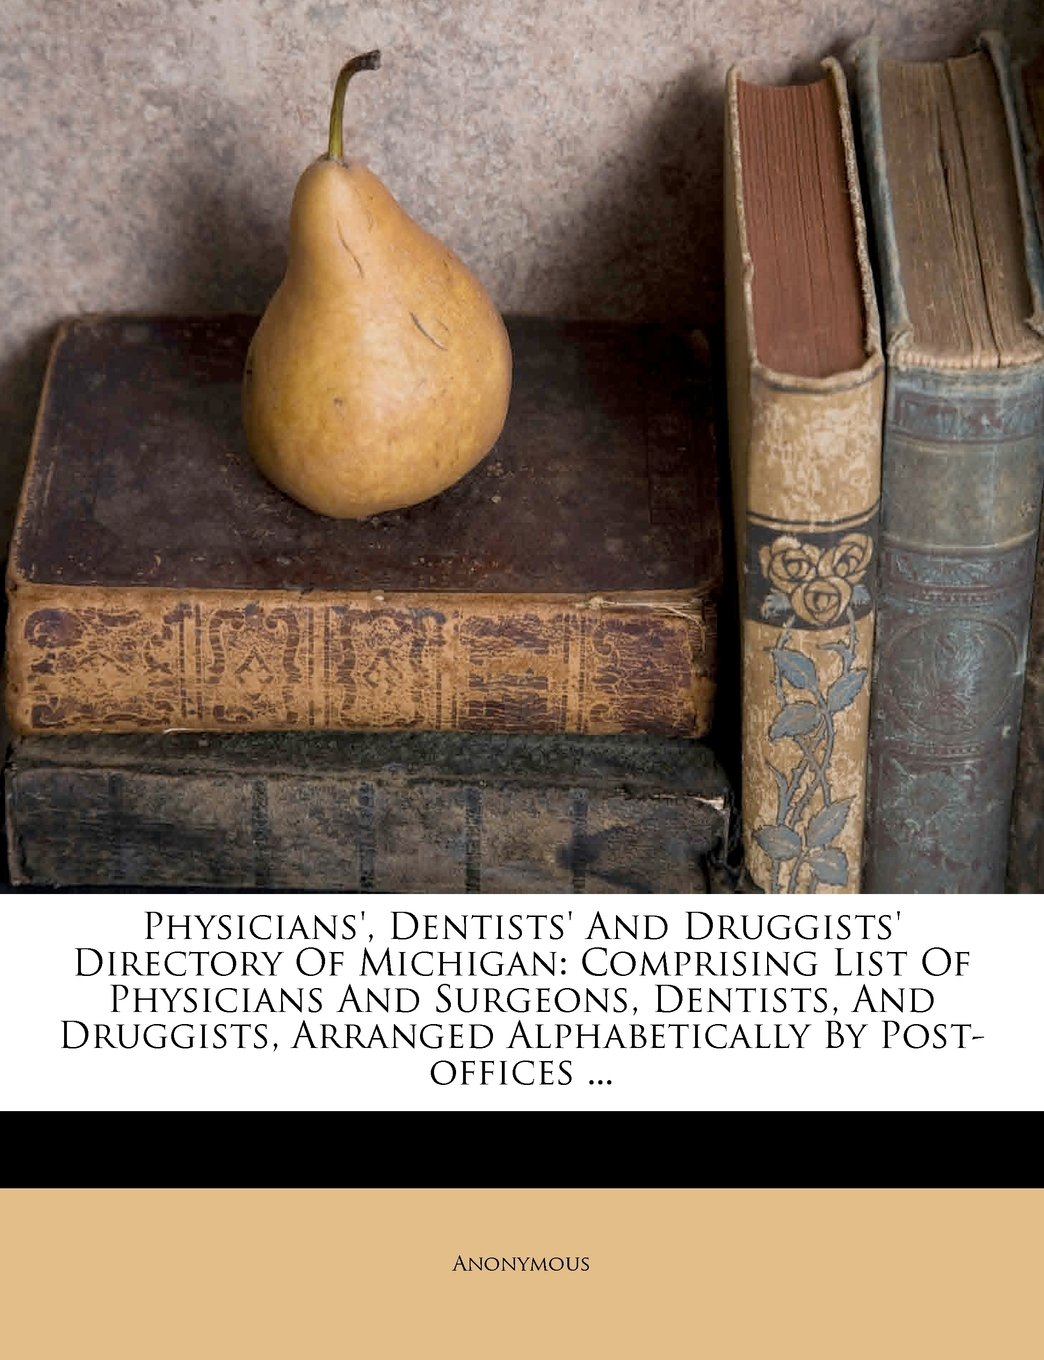 Physicians', Dentists' And Druggists' Directory Of Michigan: Comprising List Of Physicians And Surgeons, Dentists, And Druggists, Arranged Alphabetically By Post-offices ... PDF